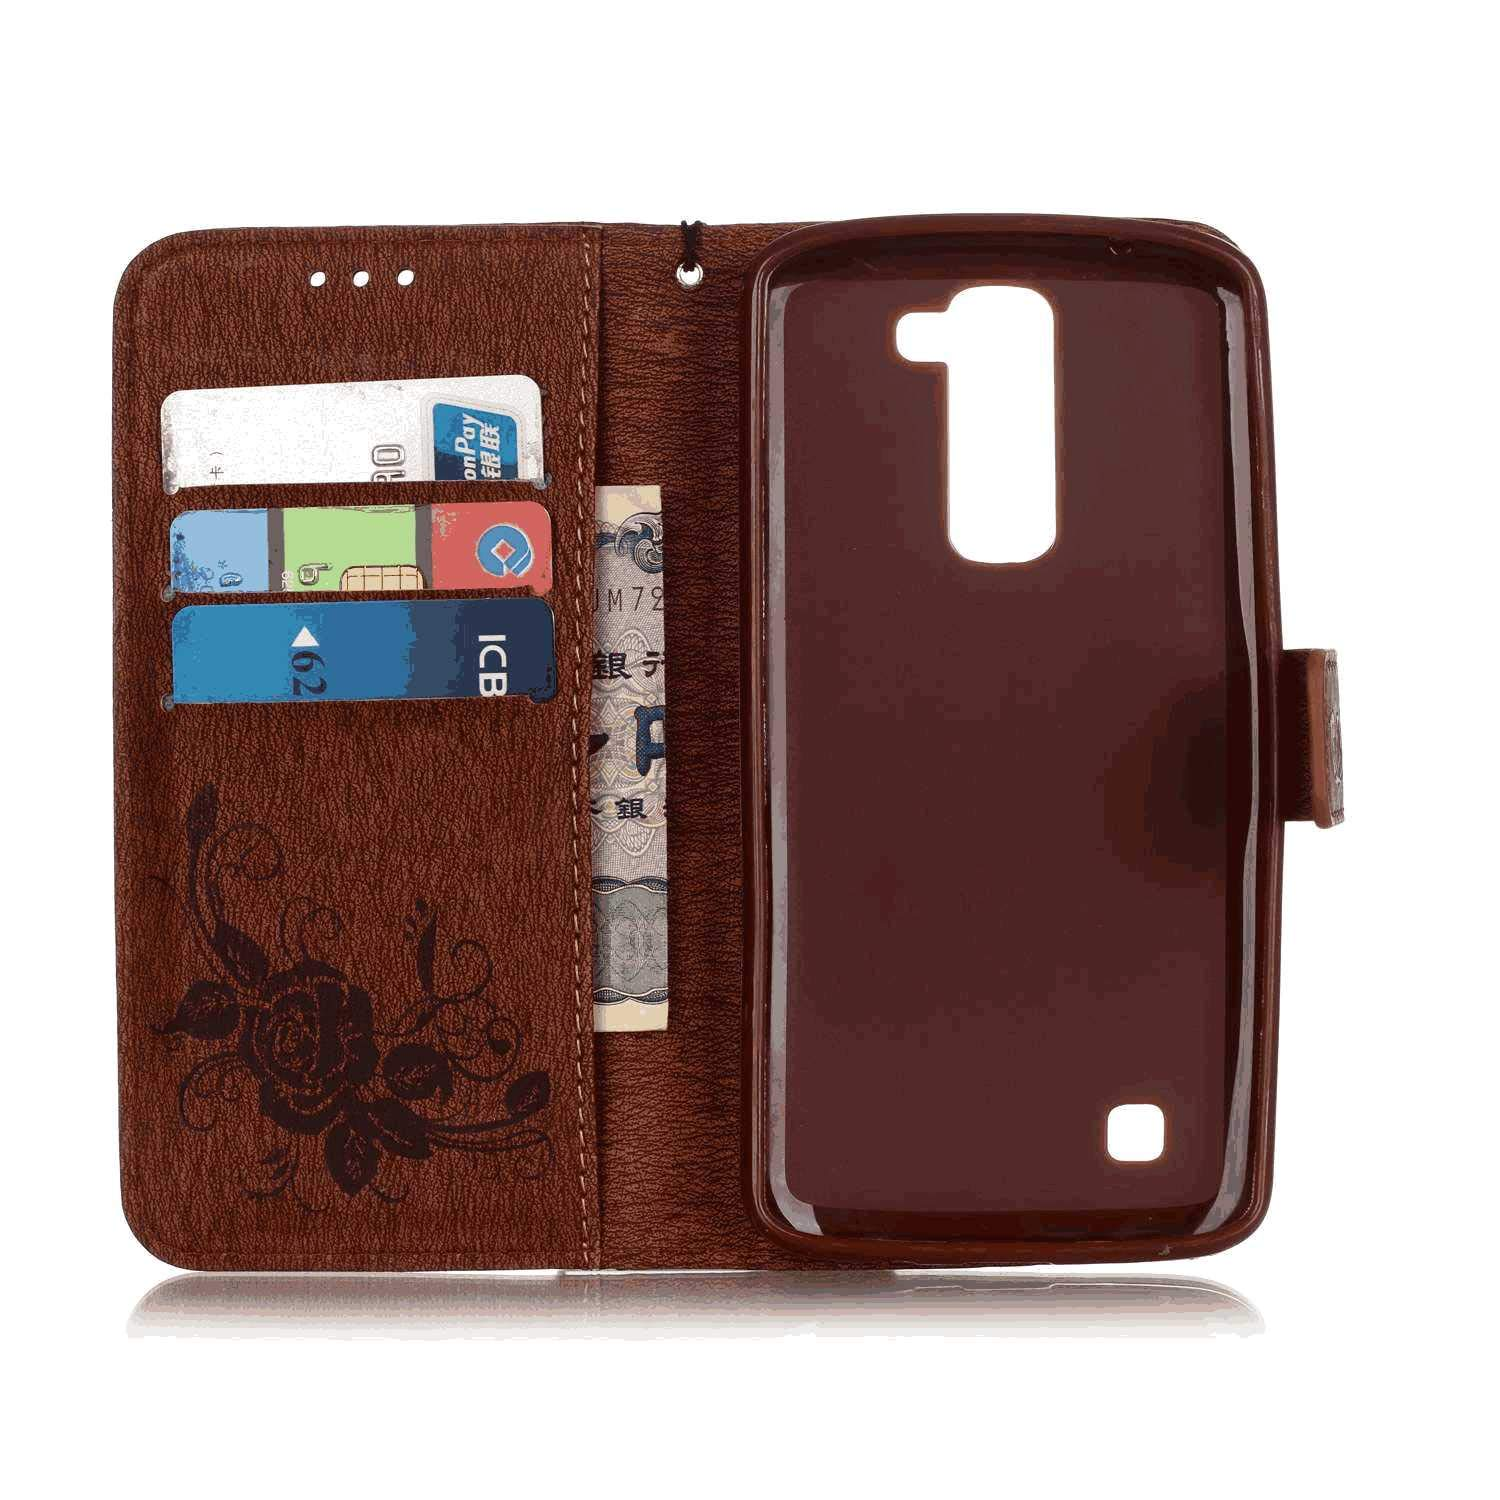 iPhone Xs Flip Case Cover for iPhone Xs Leather Card Holders Premium Business Kickstand Wallet case with Free Waterproof-Bag Grey4